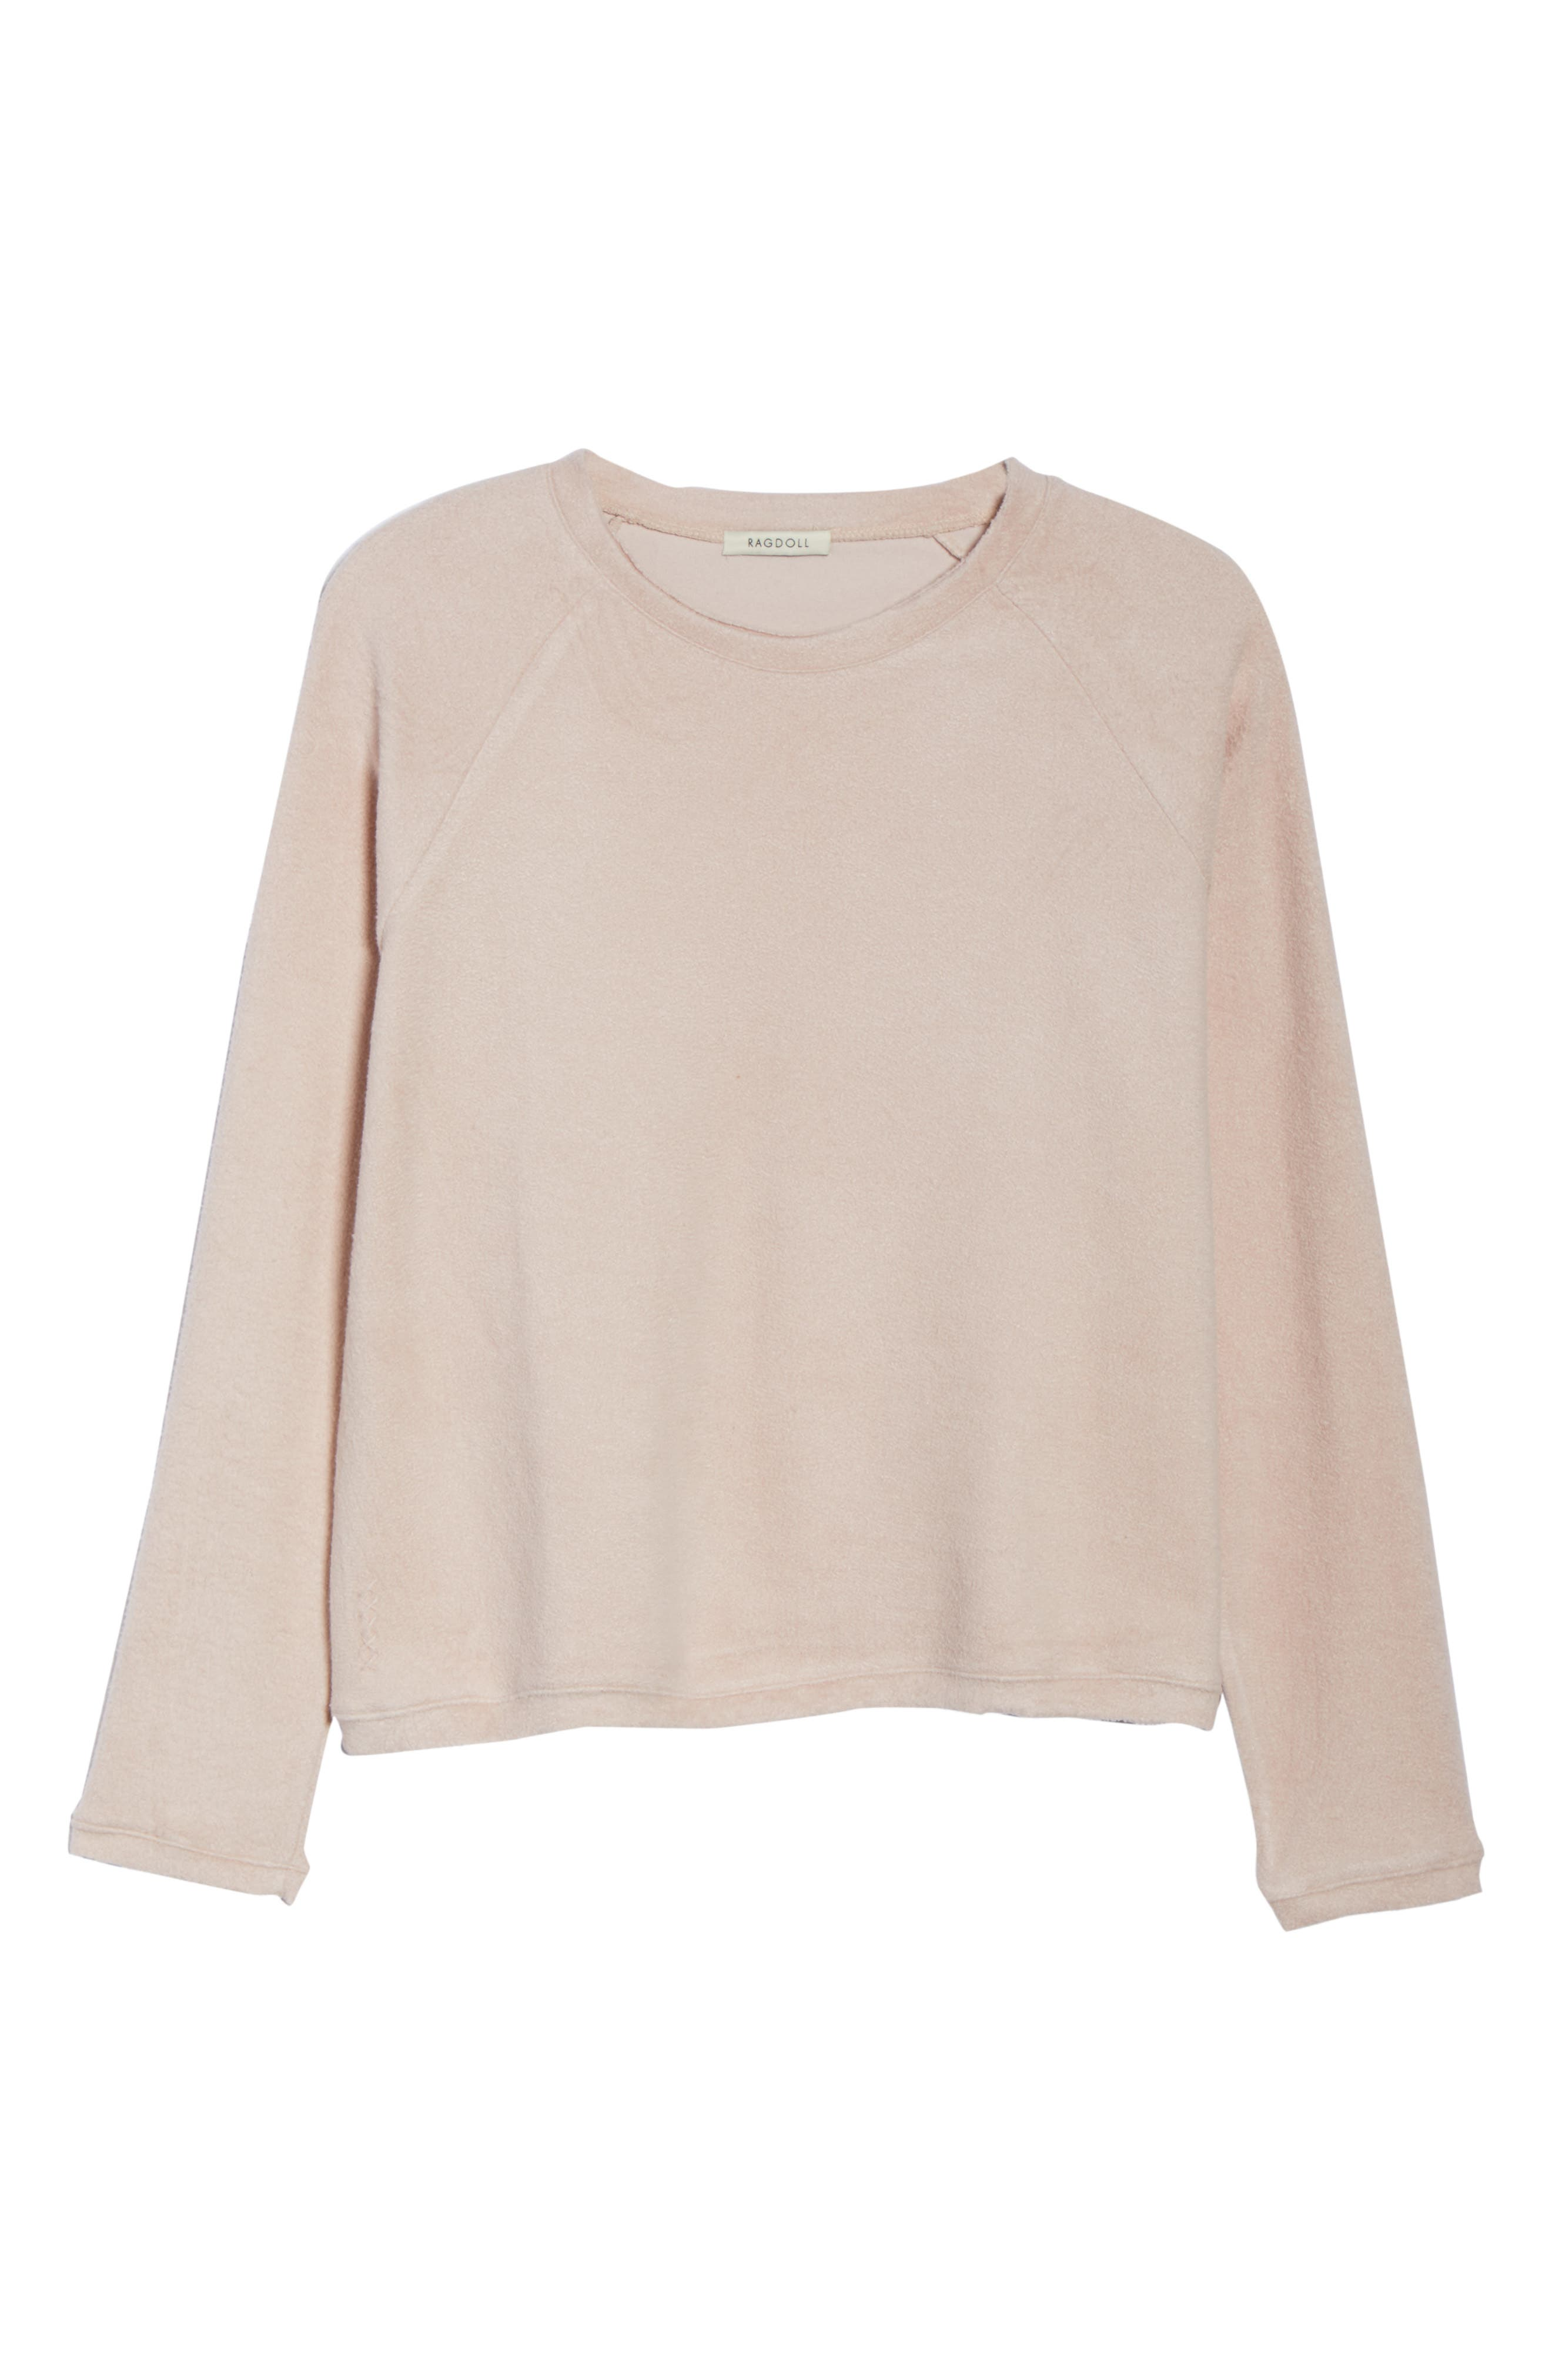 Slouchy Sweatshirt,                             Alternate thumbnail 5, color,                             Dusty Pink